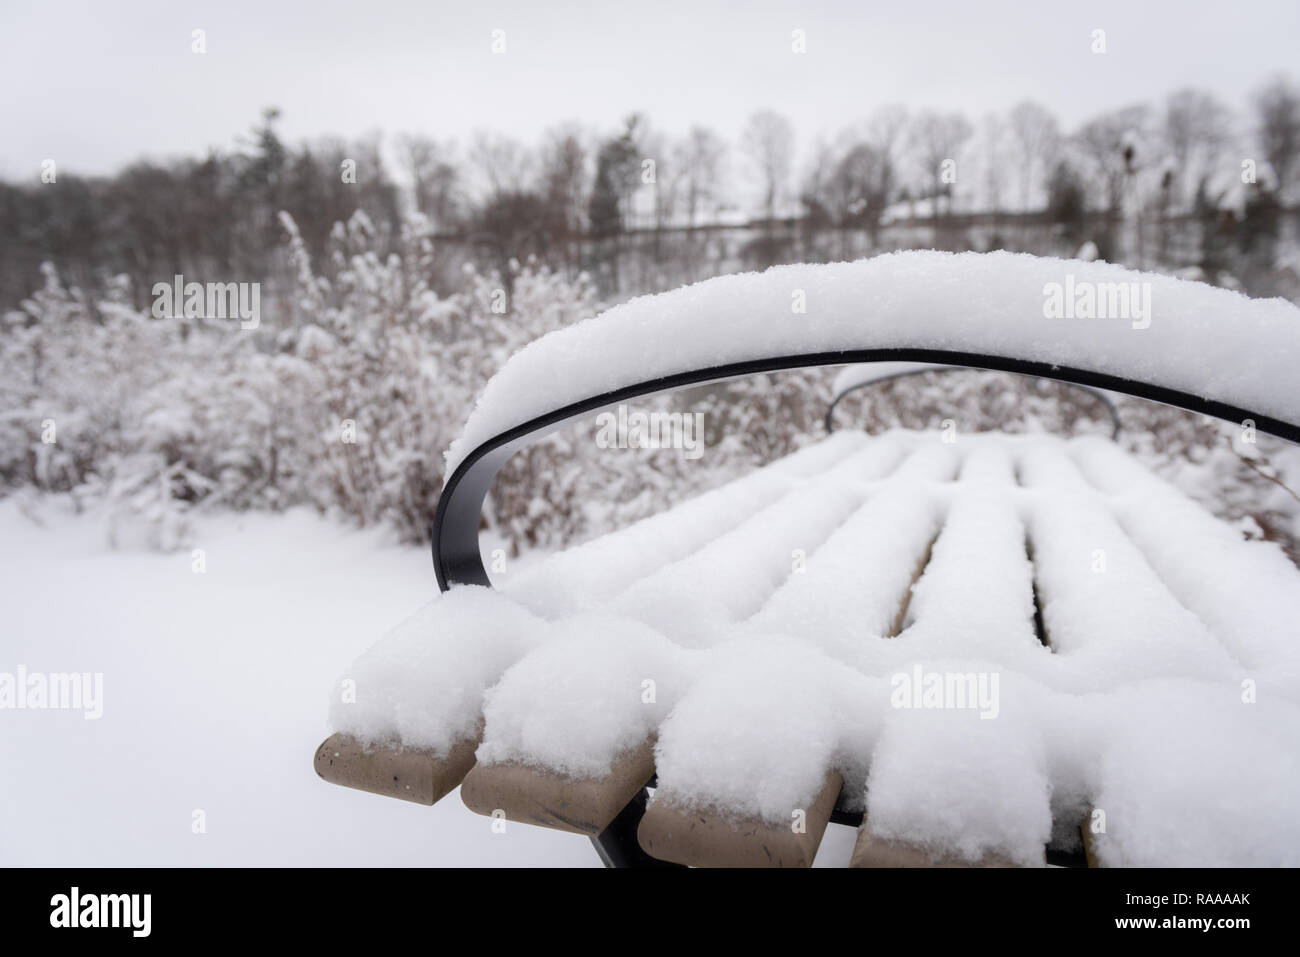 After a fresh fall of snow in London Ontario's Sprinkbank park - Stock Image